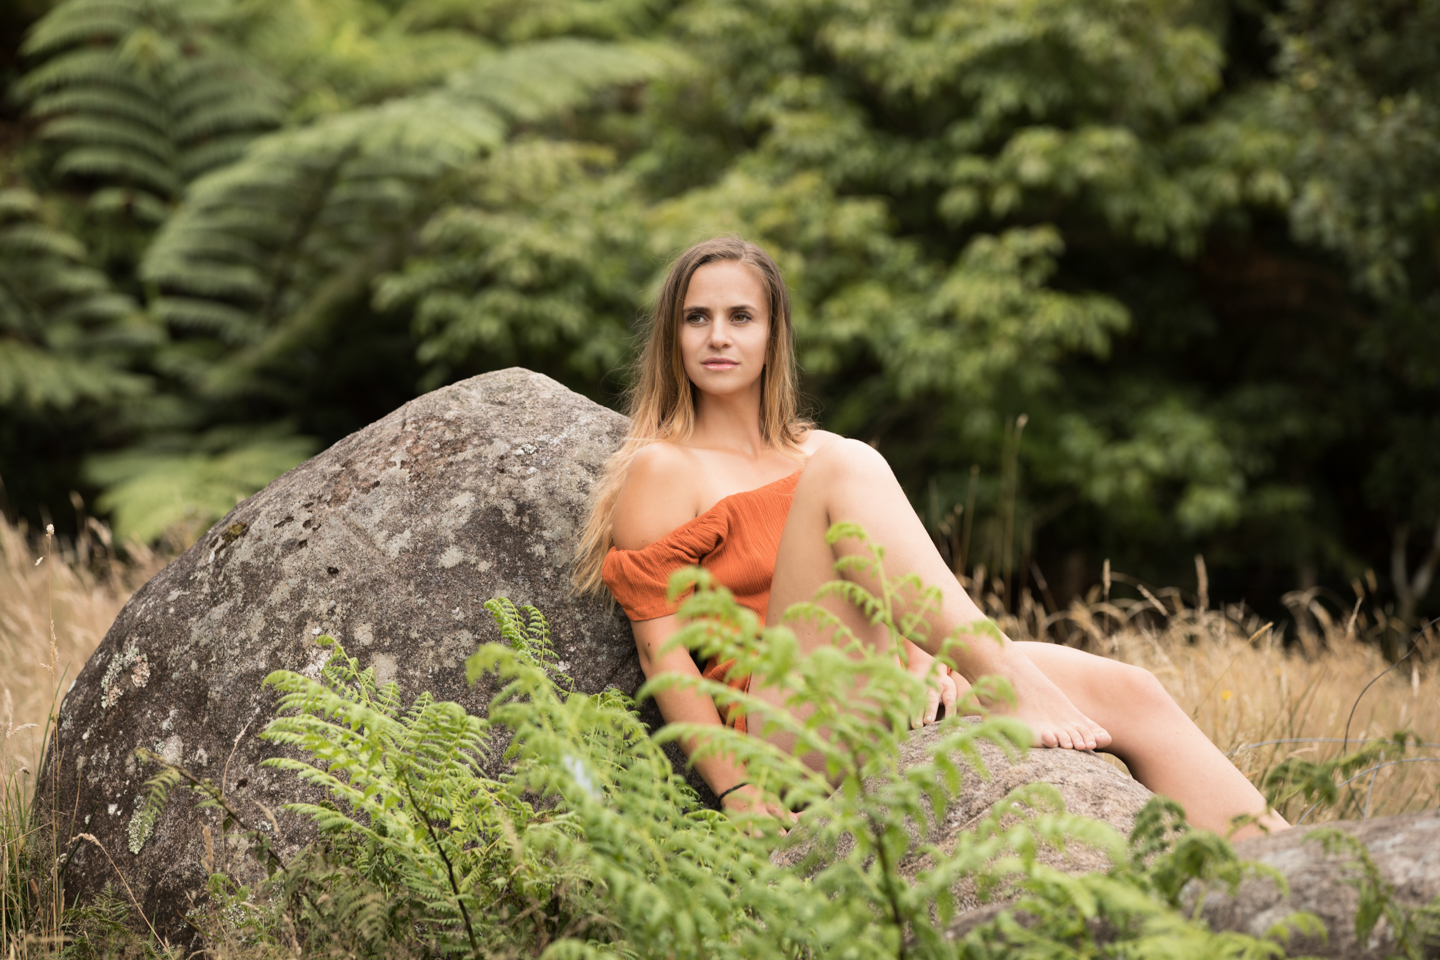 gorgeous women in a orange top leaning against a rock